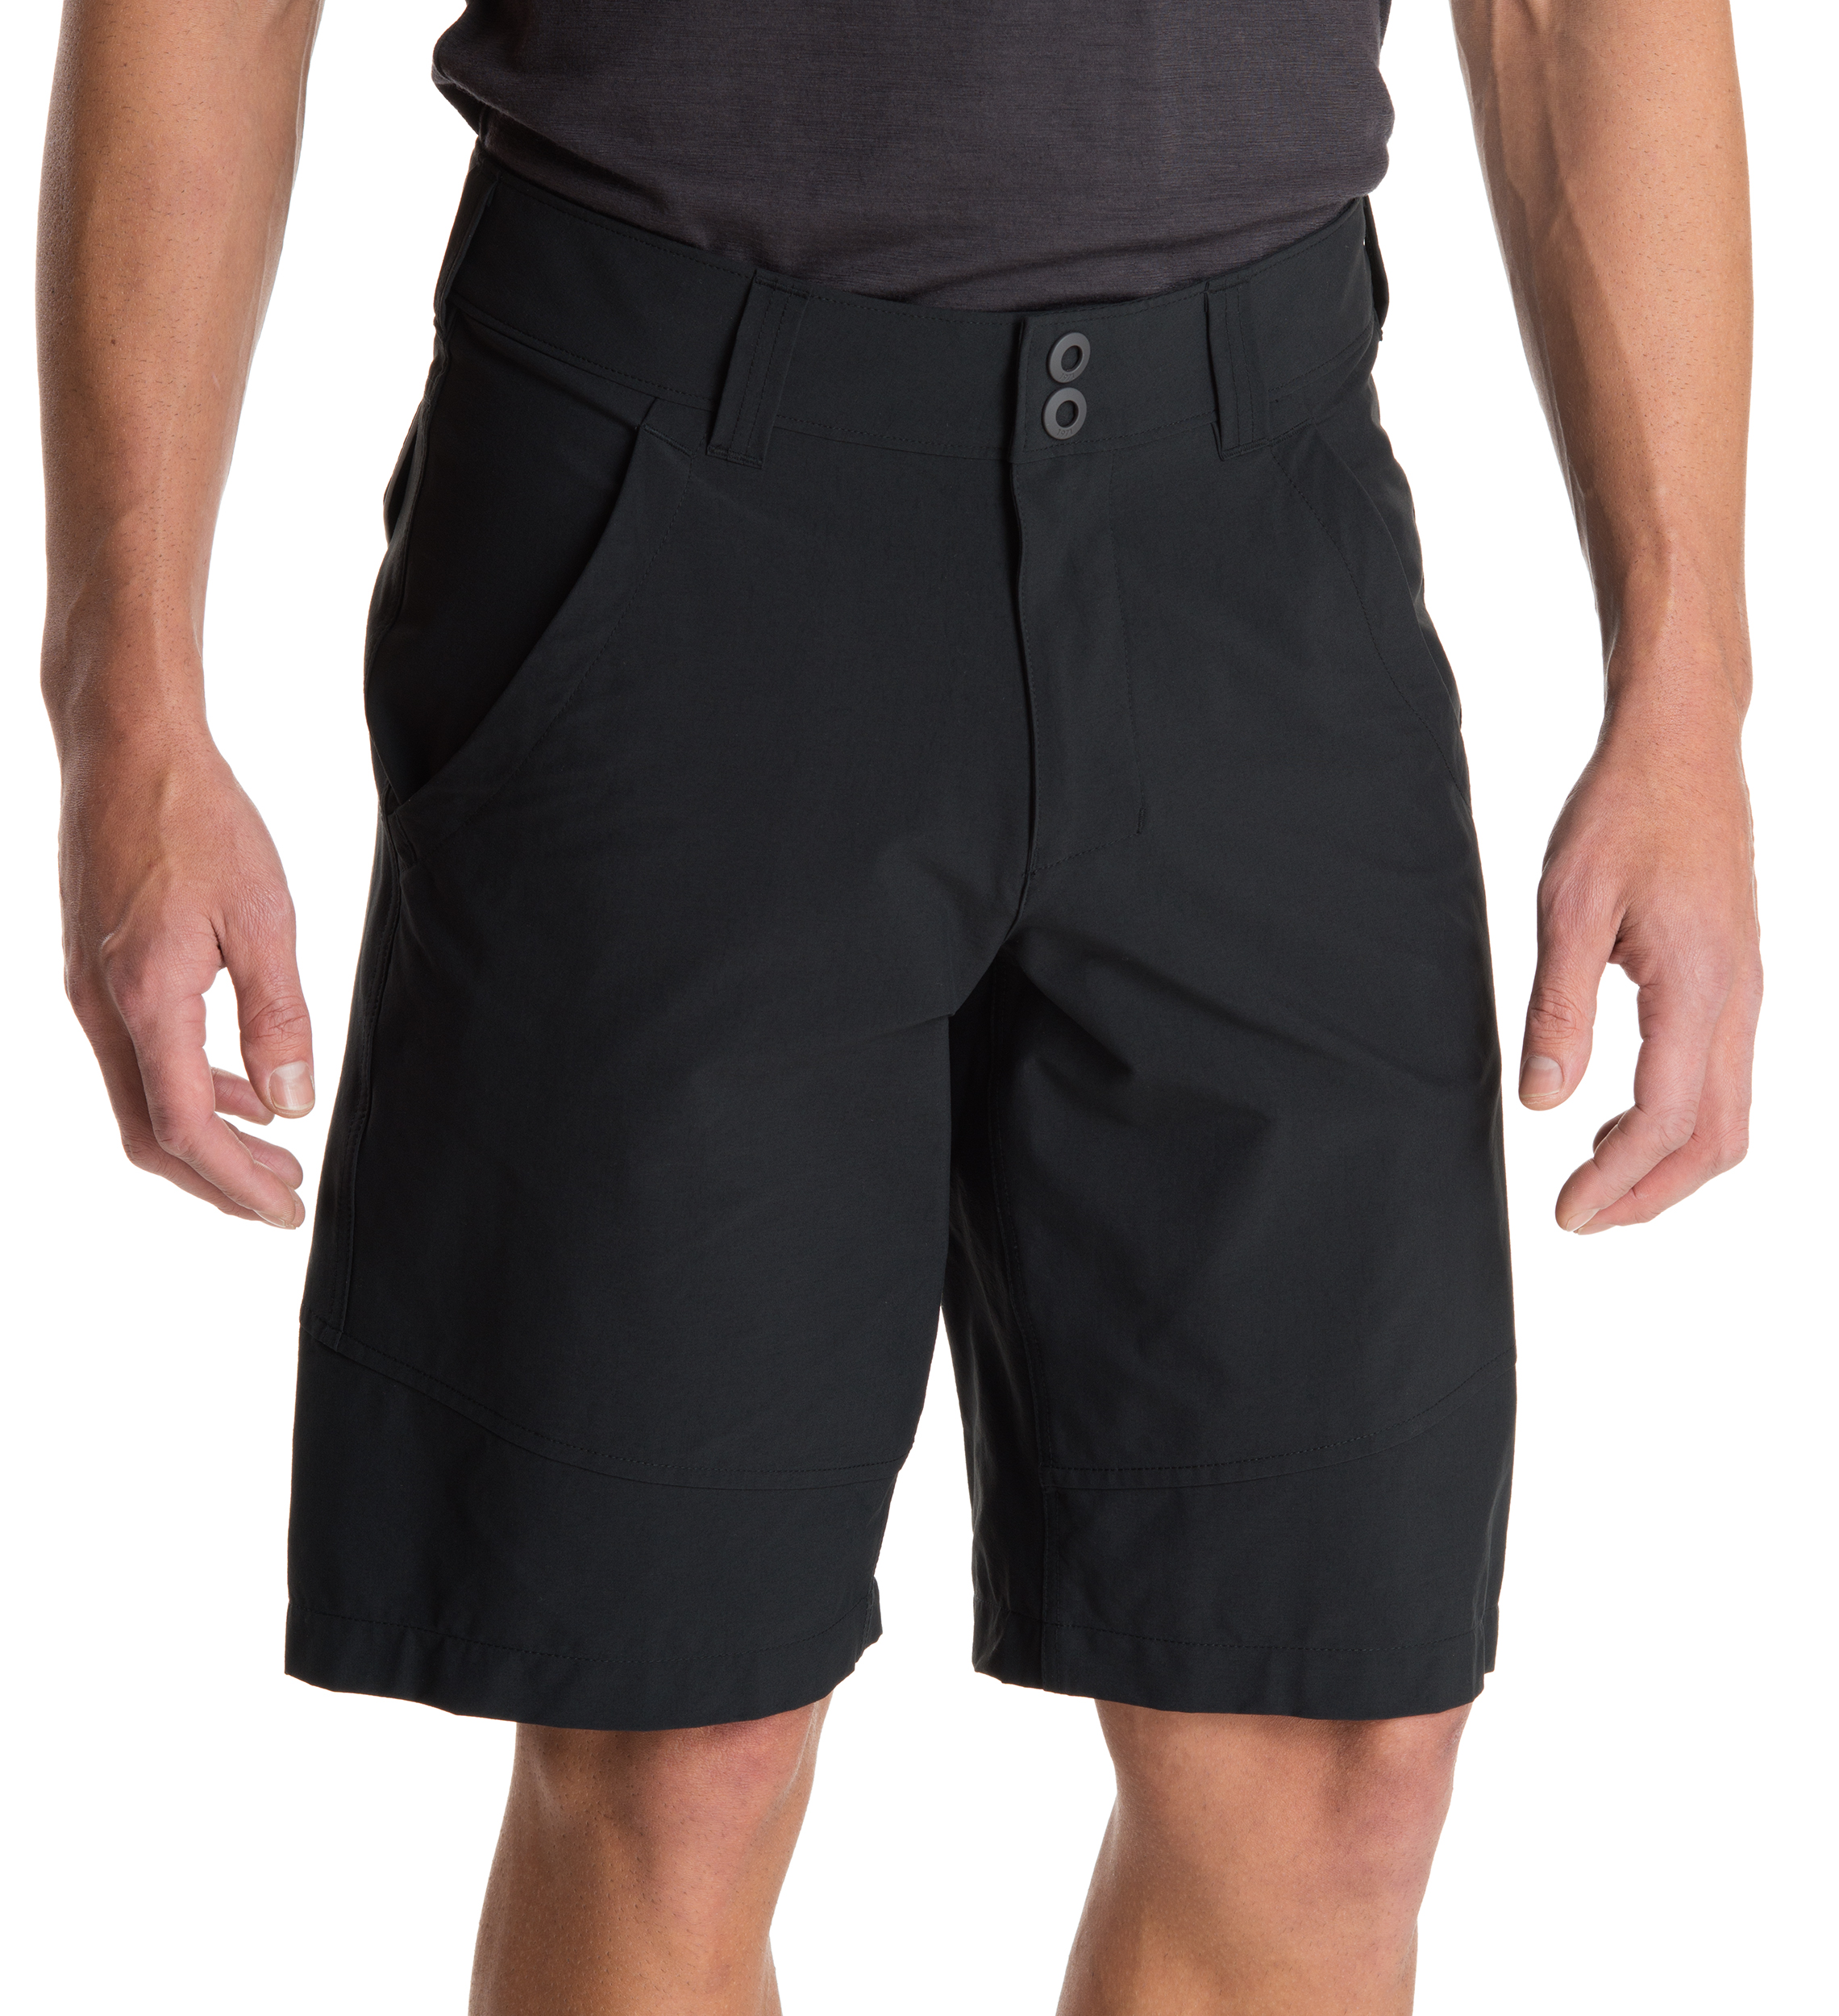 Bike Shorts and and Bike Shortstío txBoQhdCrs